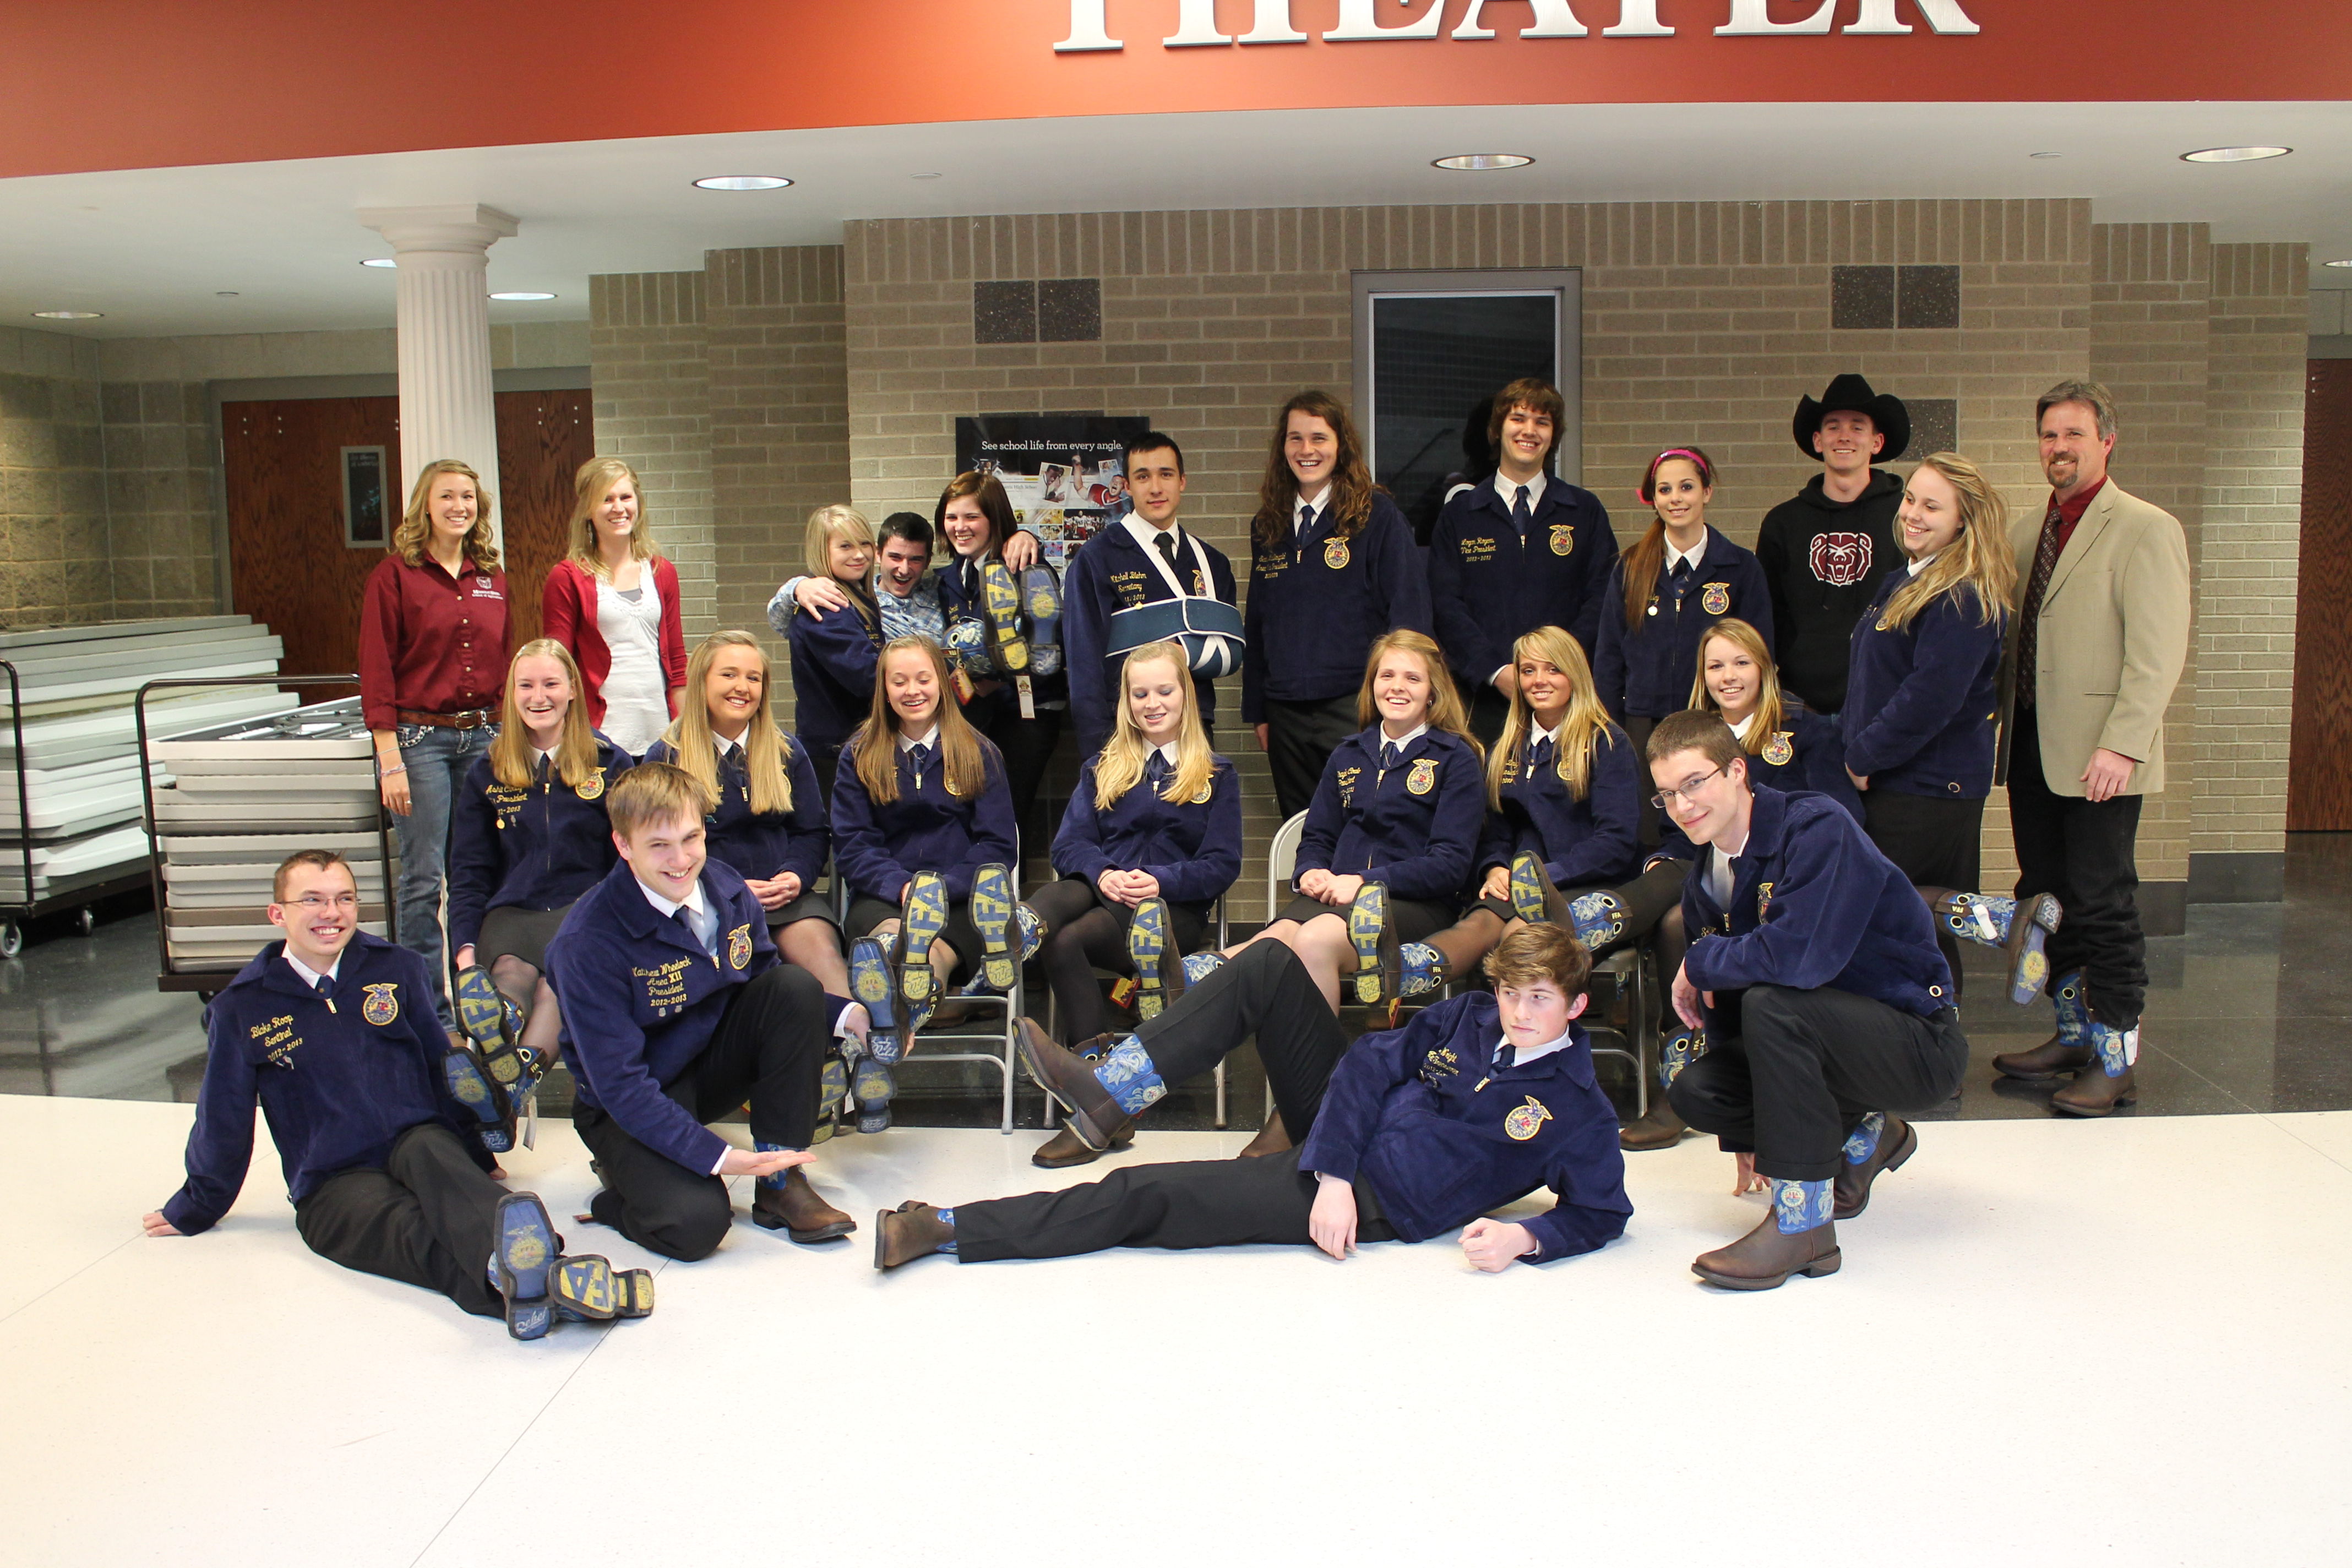 FFA Area Officers from Areas 10 and 12 show off their new boots with with student leaders from the William H. Darr School of Agriculture.